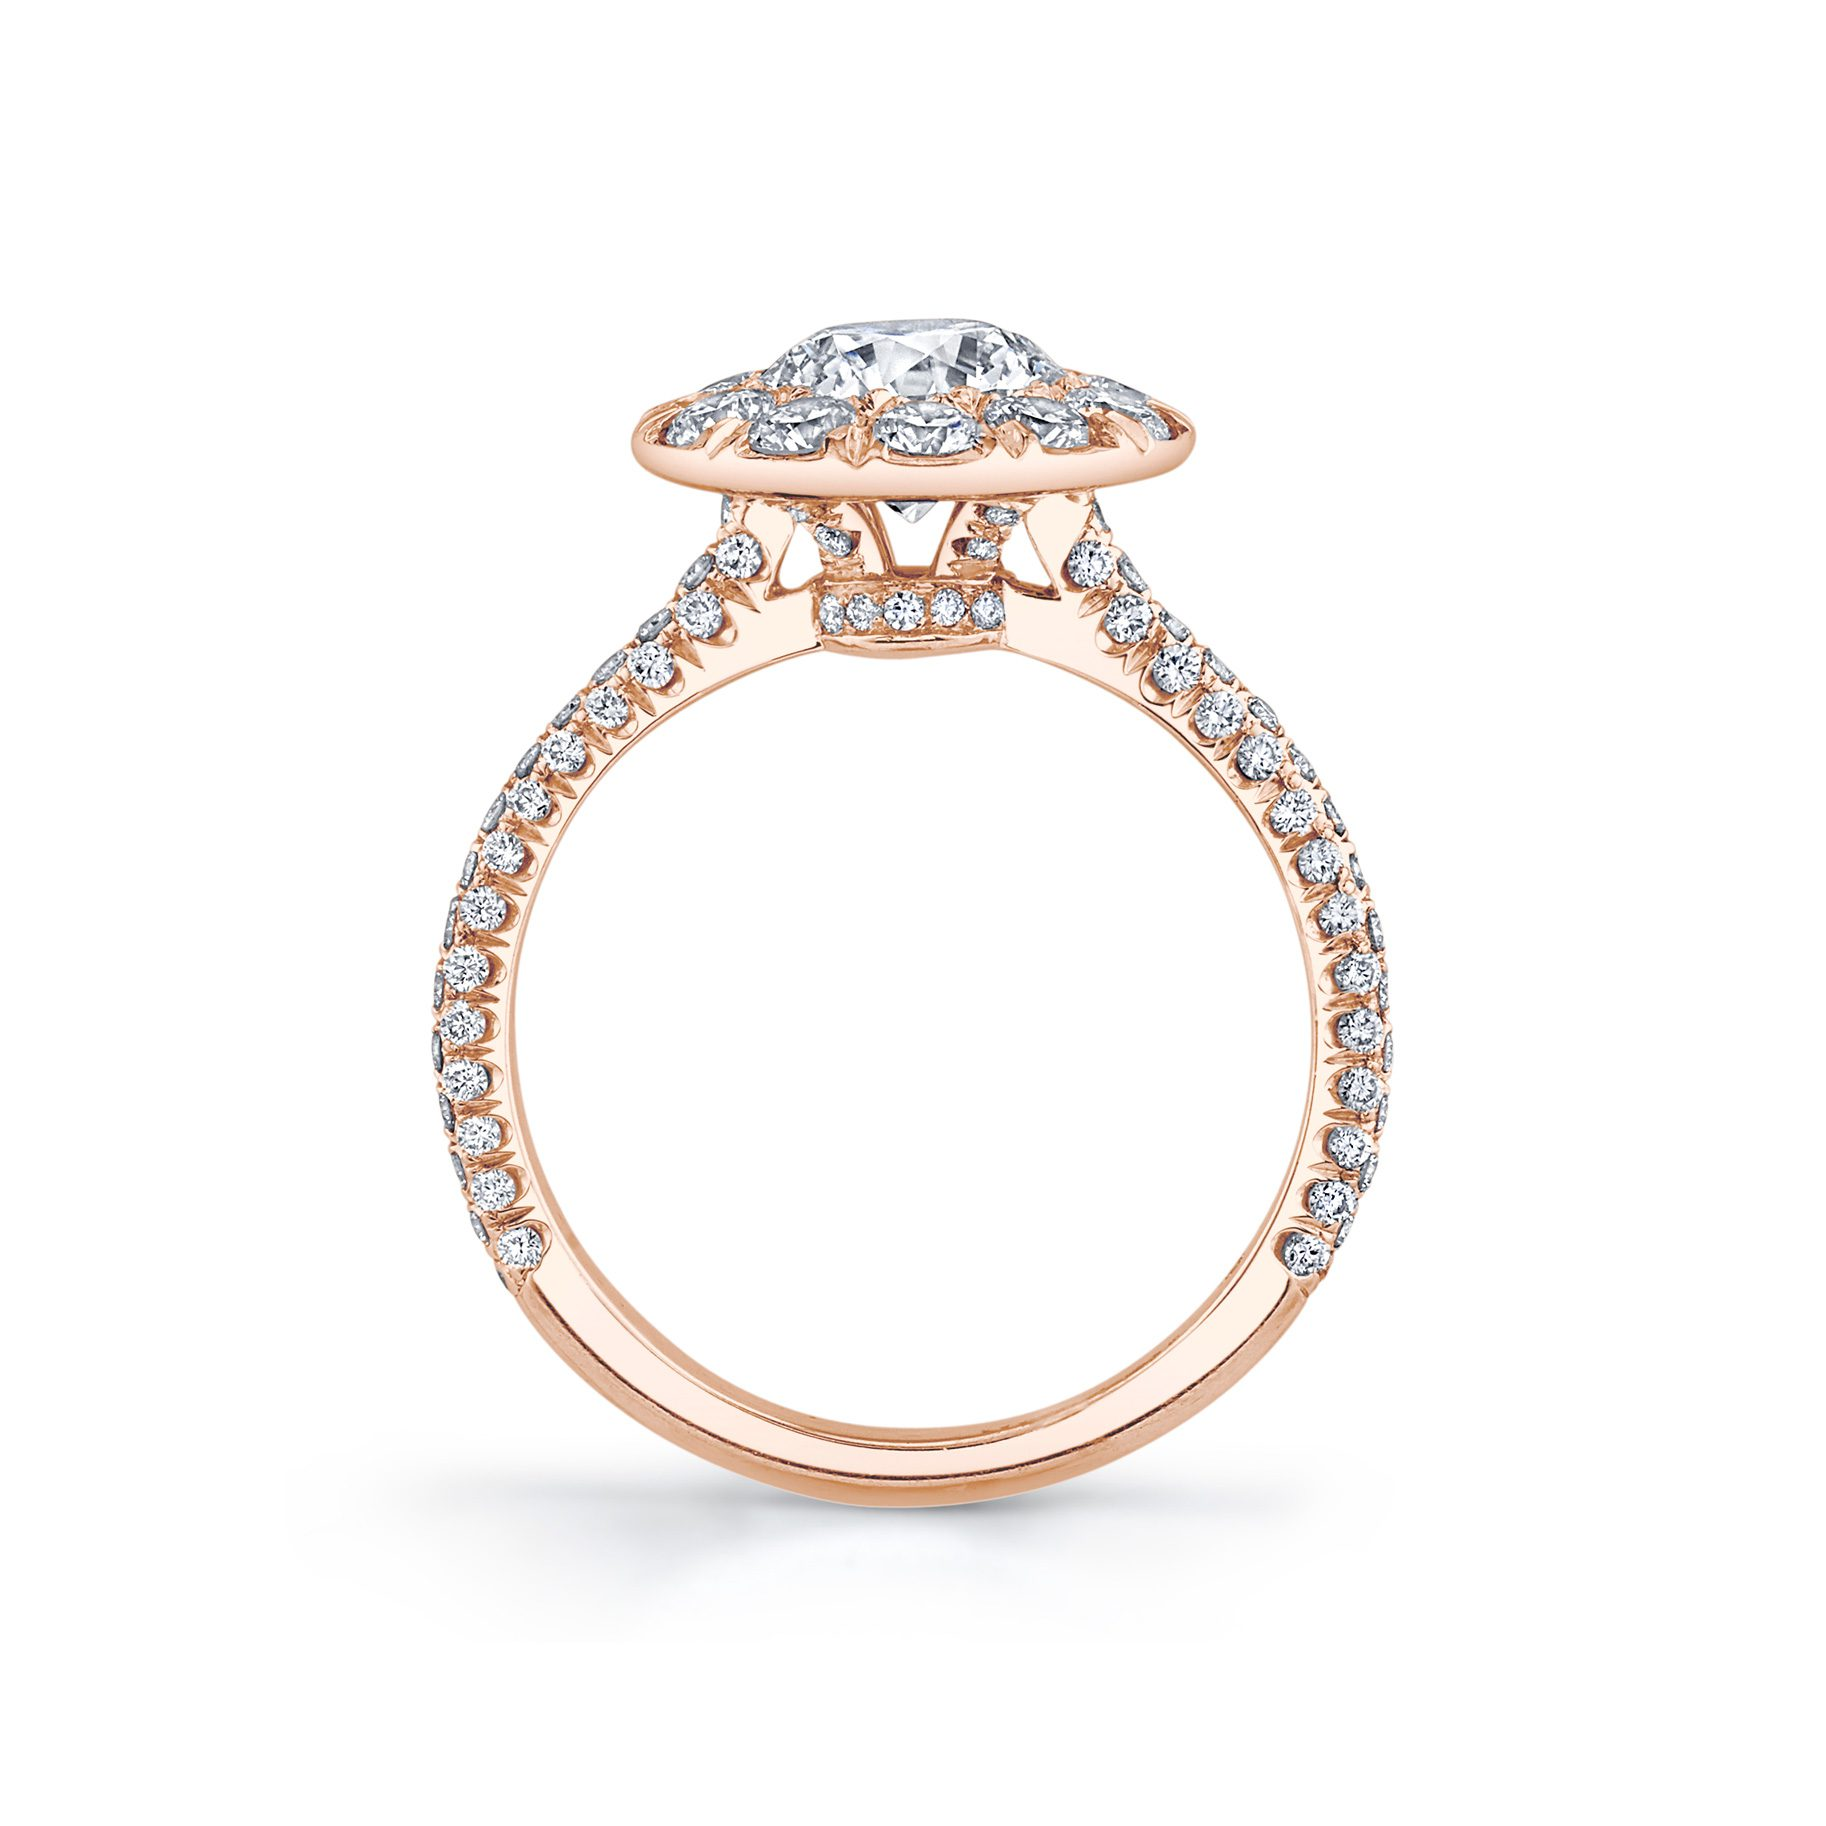 Jacqueline Round Brilliant Seamless Solitaire® Engagement Ring 18k Rose Gold Standing View by Oui by Jean Dousset